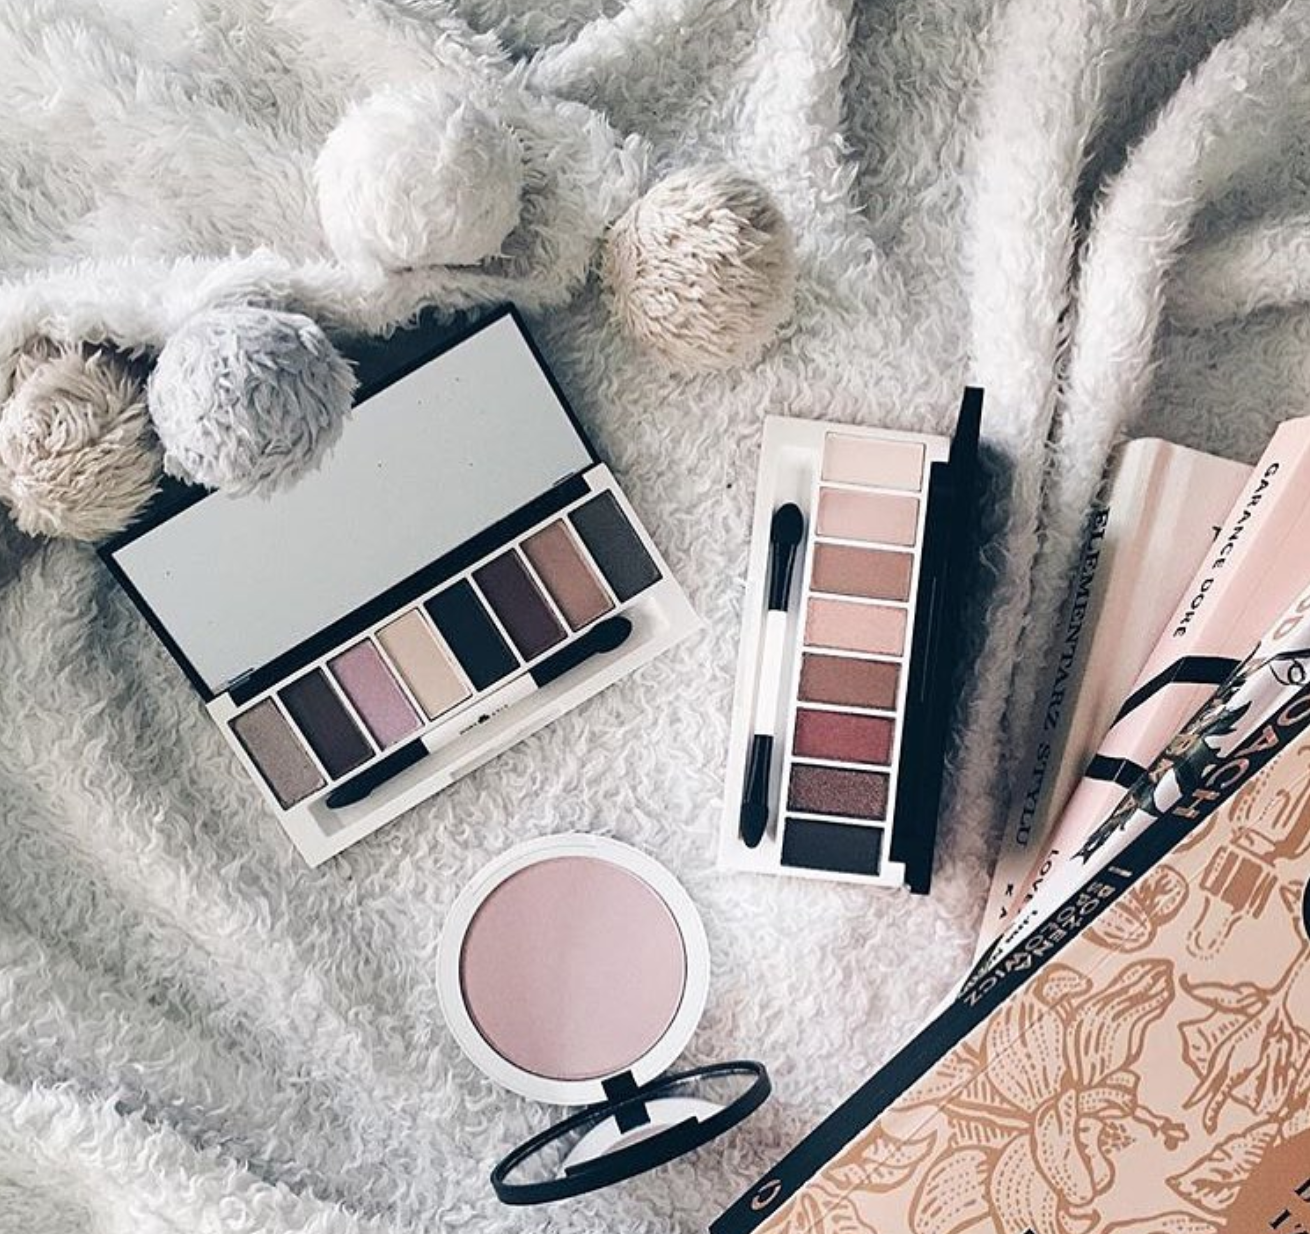 This photo of our Lily Lolo Limited Edition eye palettes by @elfnaczi is just ???????? #lilylolo This photo of our Lily Lolo Limited Edition eye palettes by @elfnaczi is just ???????? #lilylolo